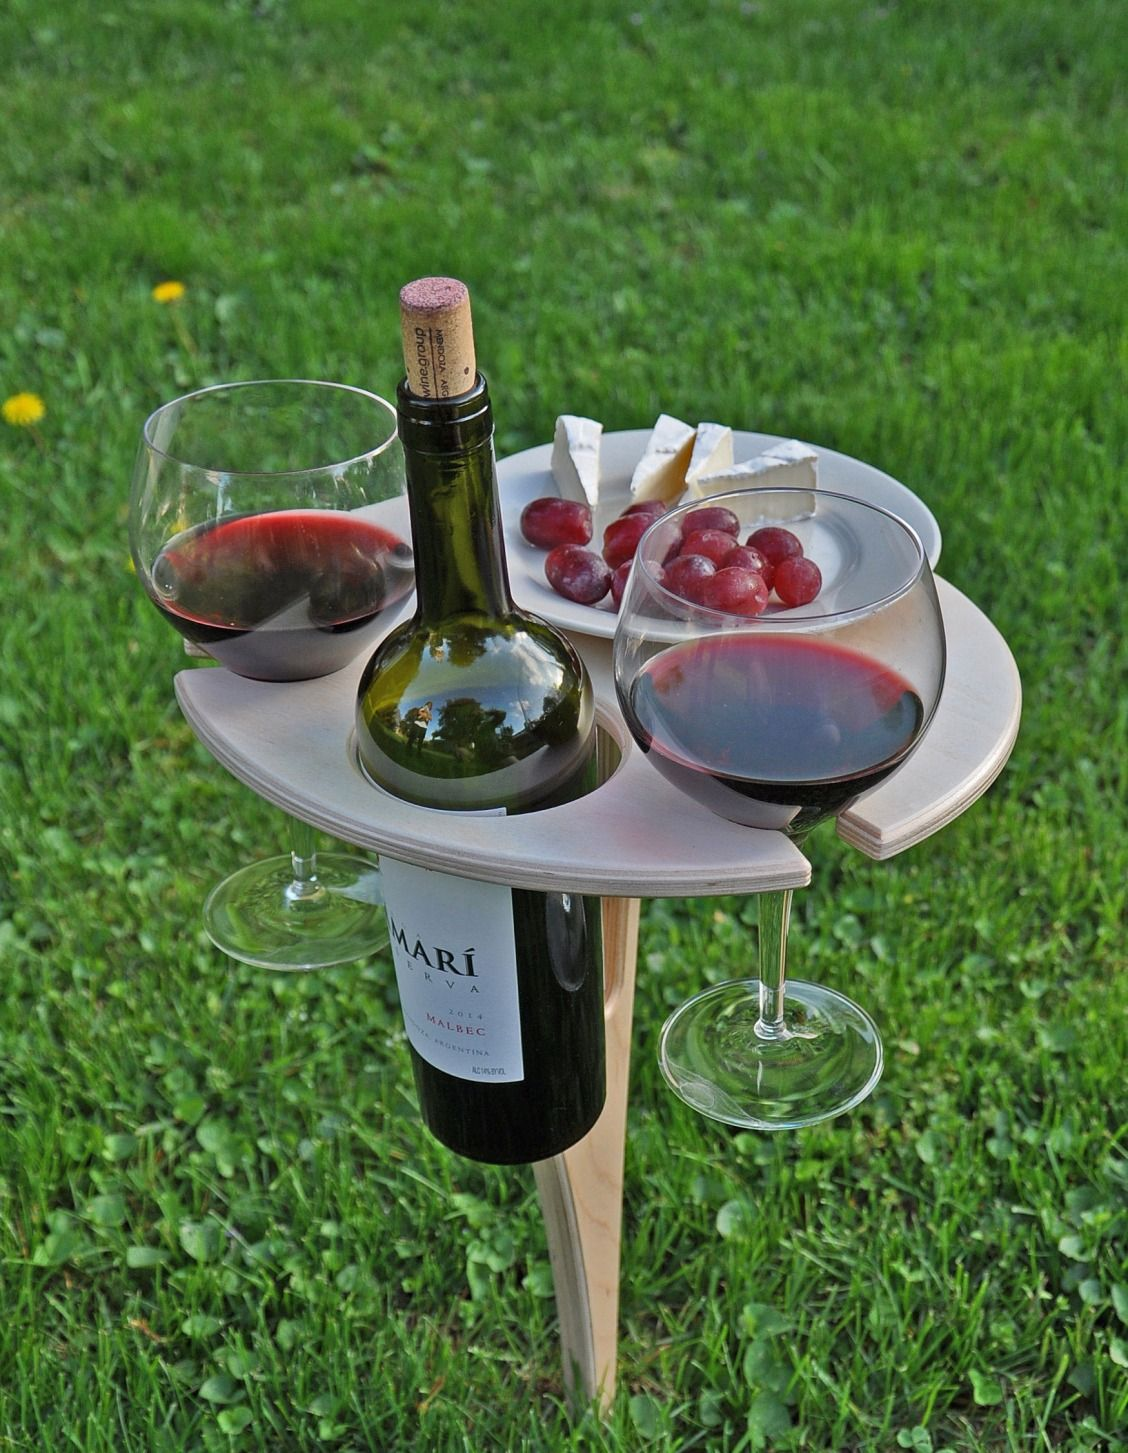 Wooden Drink Holder A Portable Table With Holders For Wine It 39s What Summer